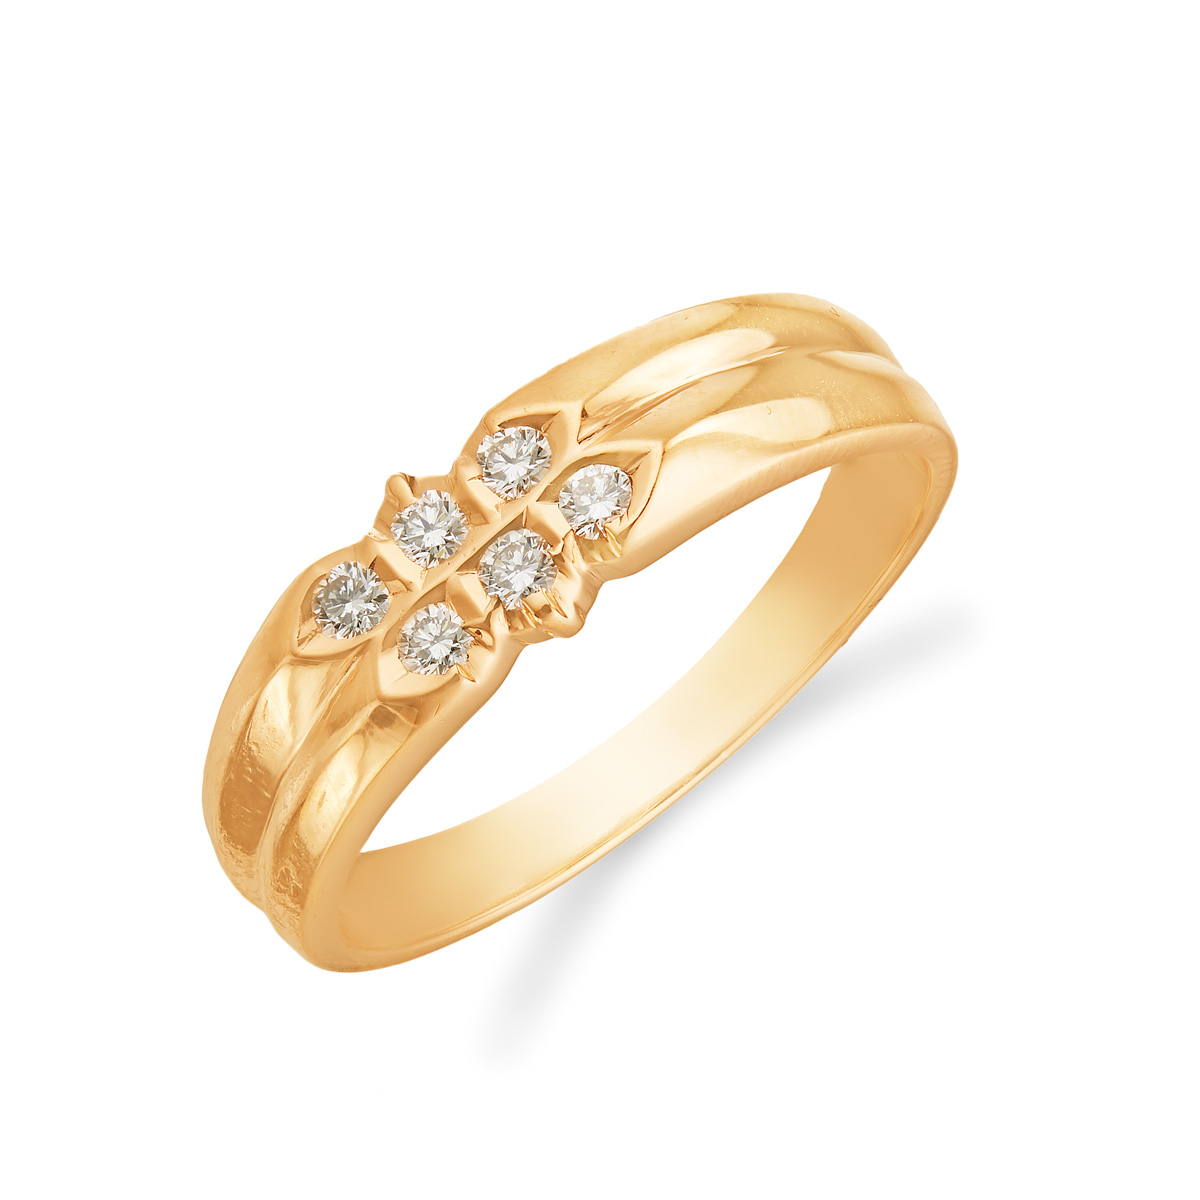 2-Layered Stunning Dimaond Ring